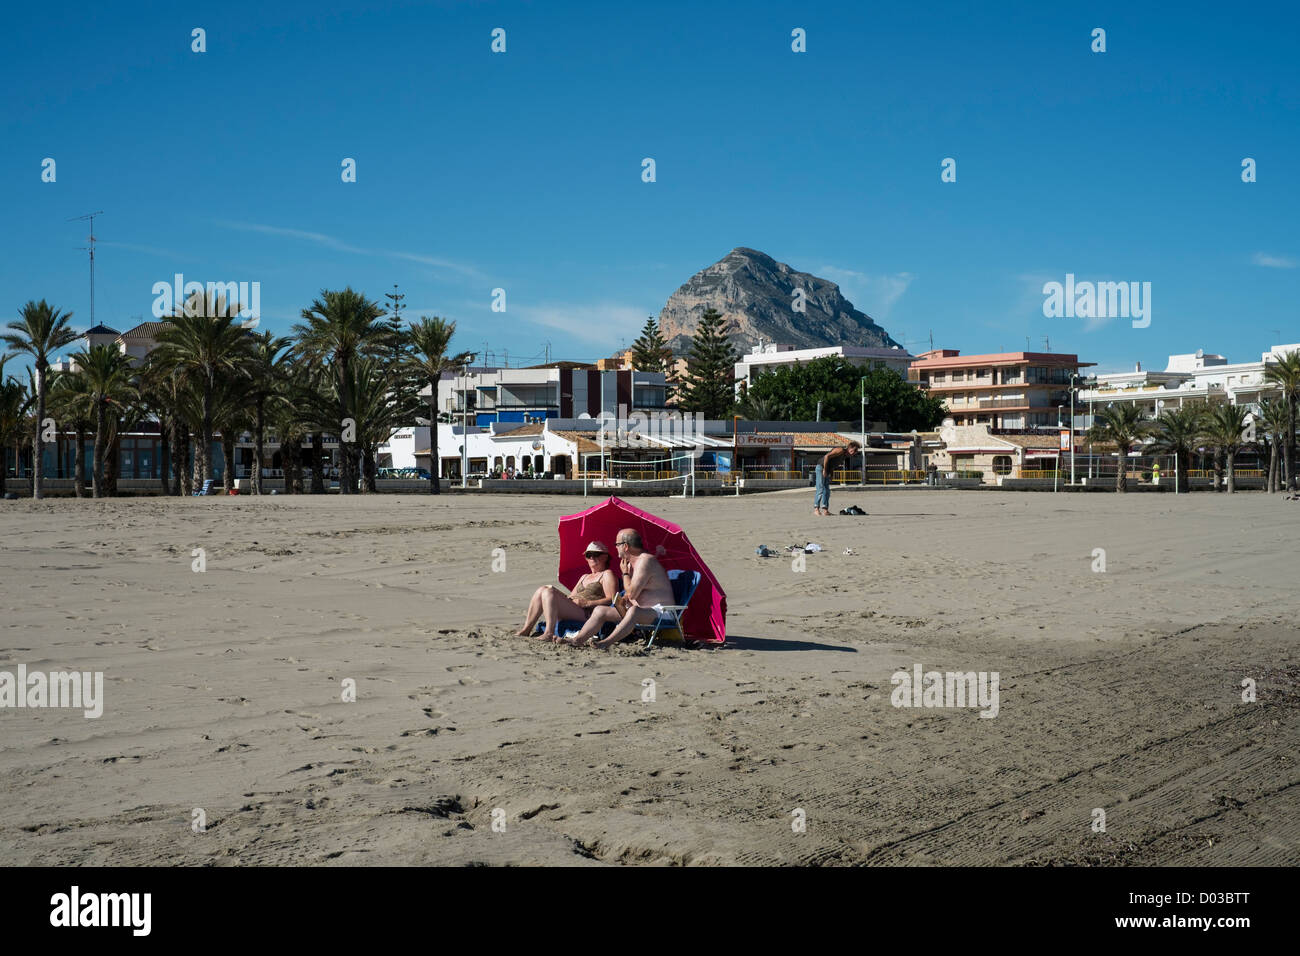 Sunbathers on the beach at Javea, Spain using a parasol to protect from the wind. - Stock Image